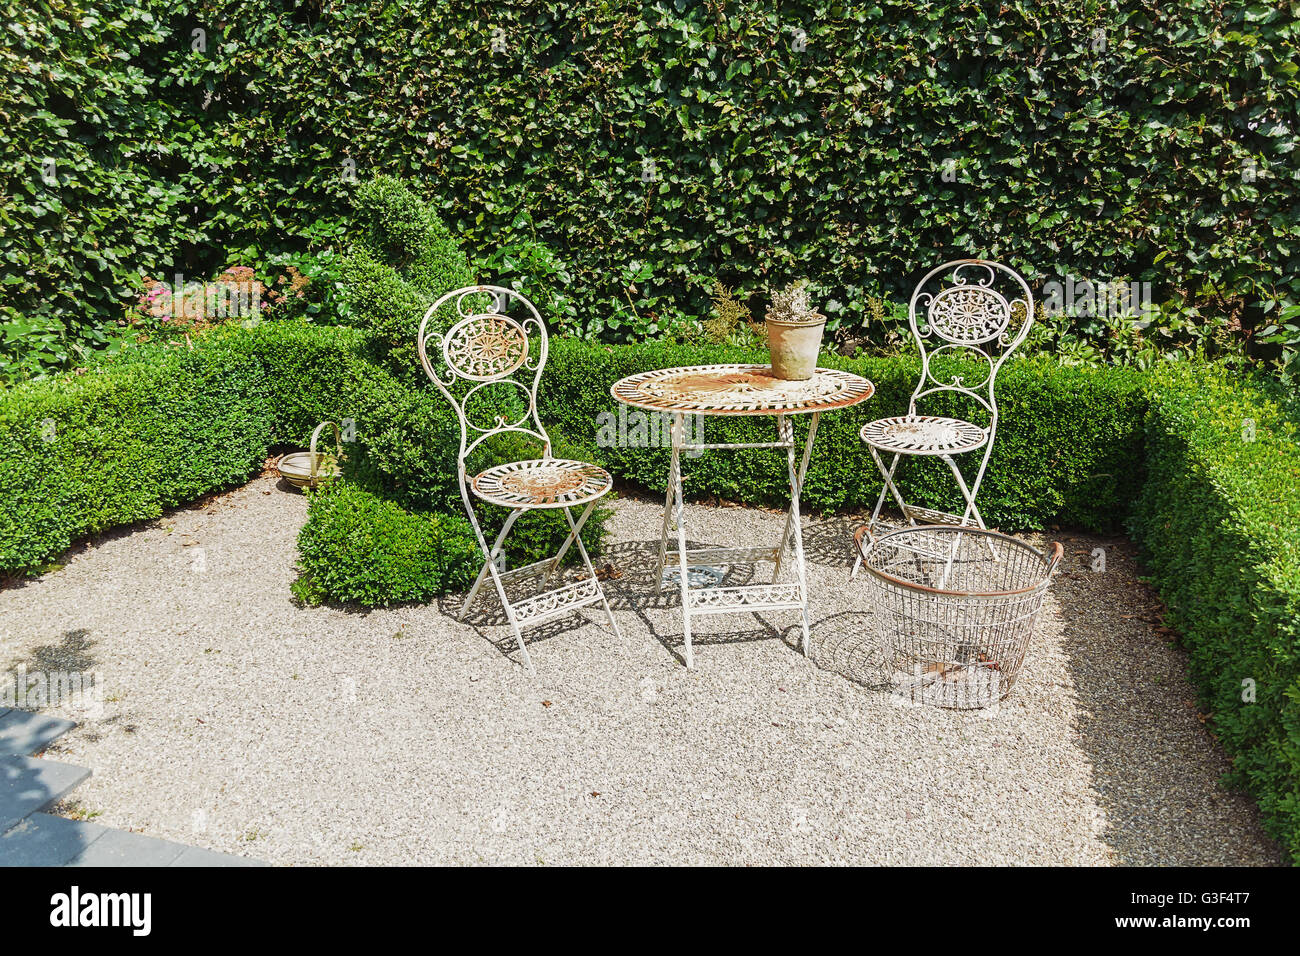 Openwork iron garden furniture to the background of the hedge. - Stock Image